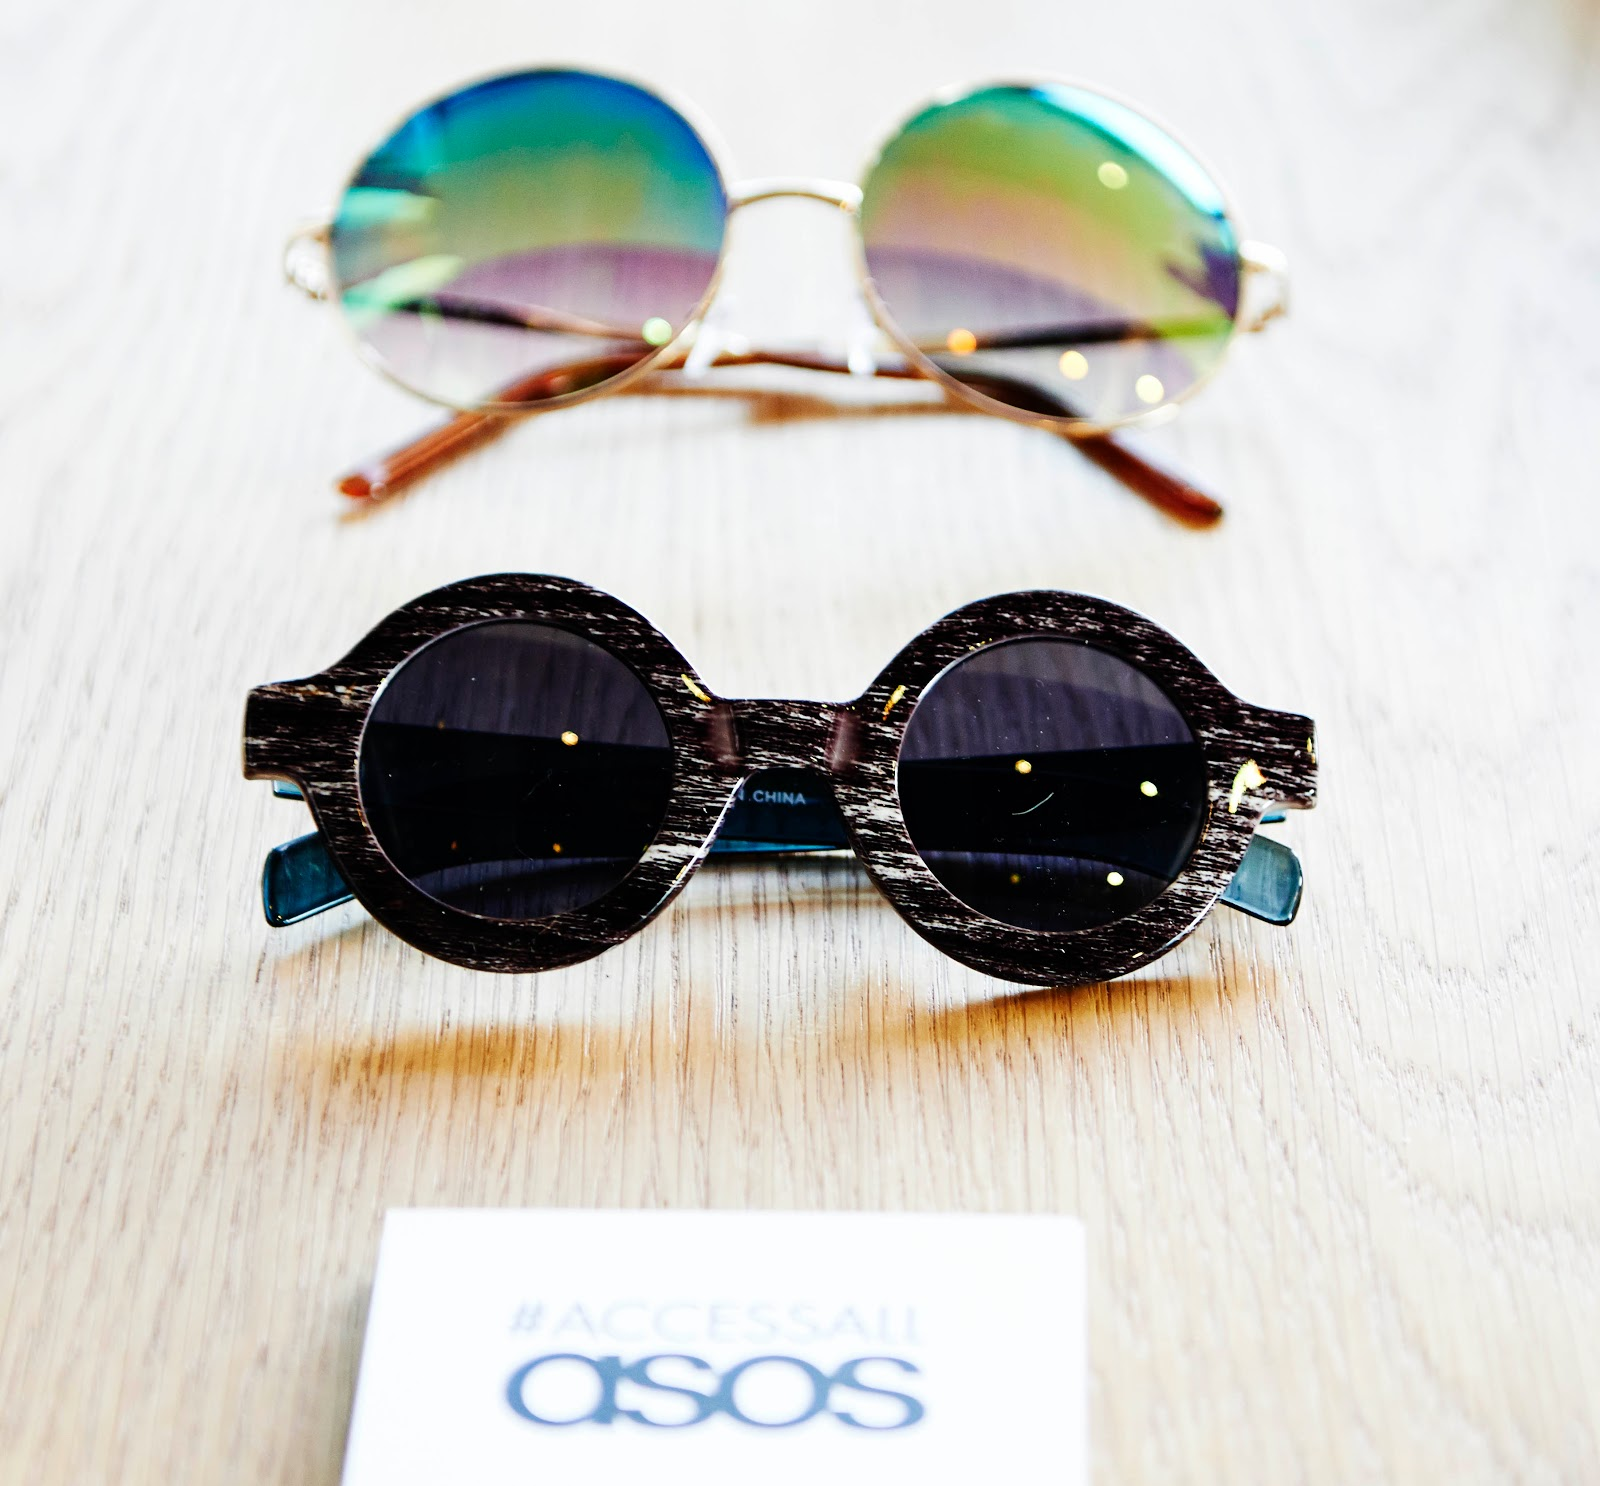 asos, epic, summer, event, deau, blogger, blog, dominique, candido, fashion, mode, evenement, first,